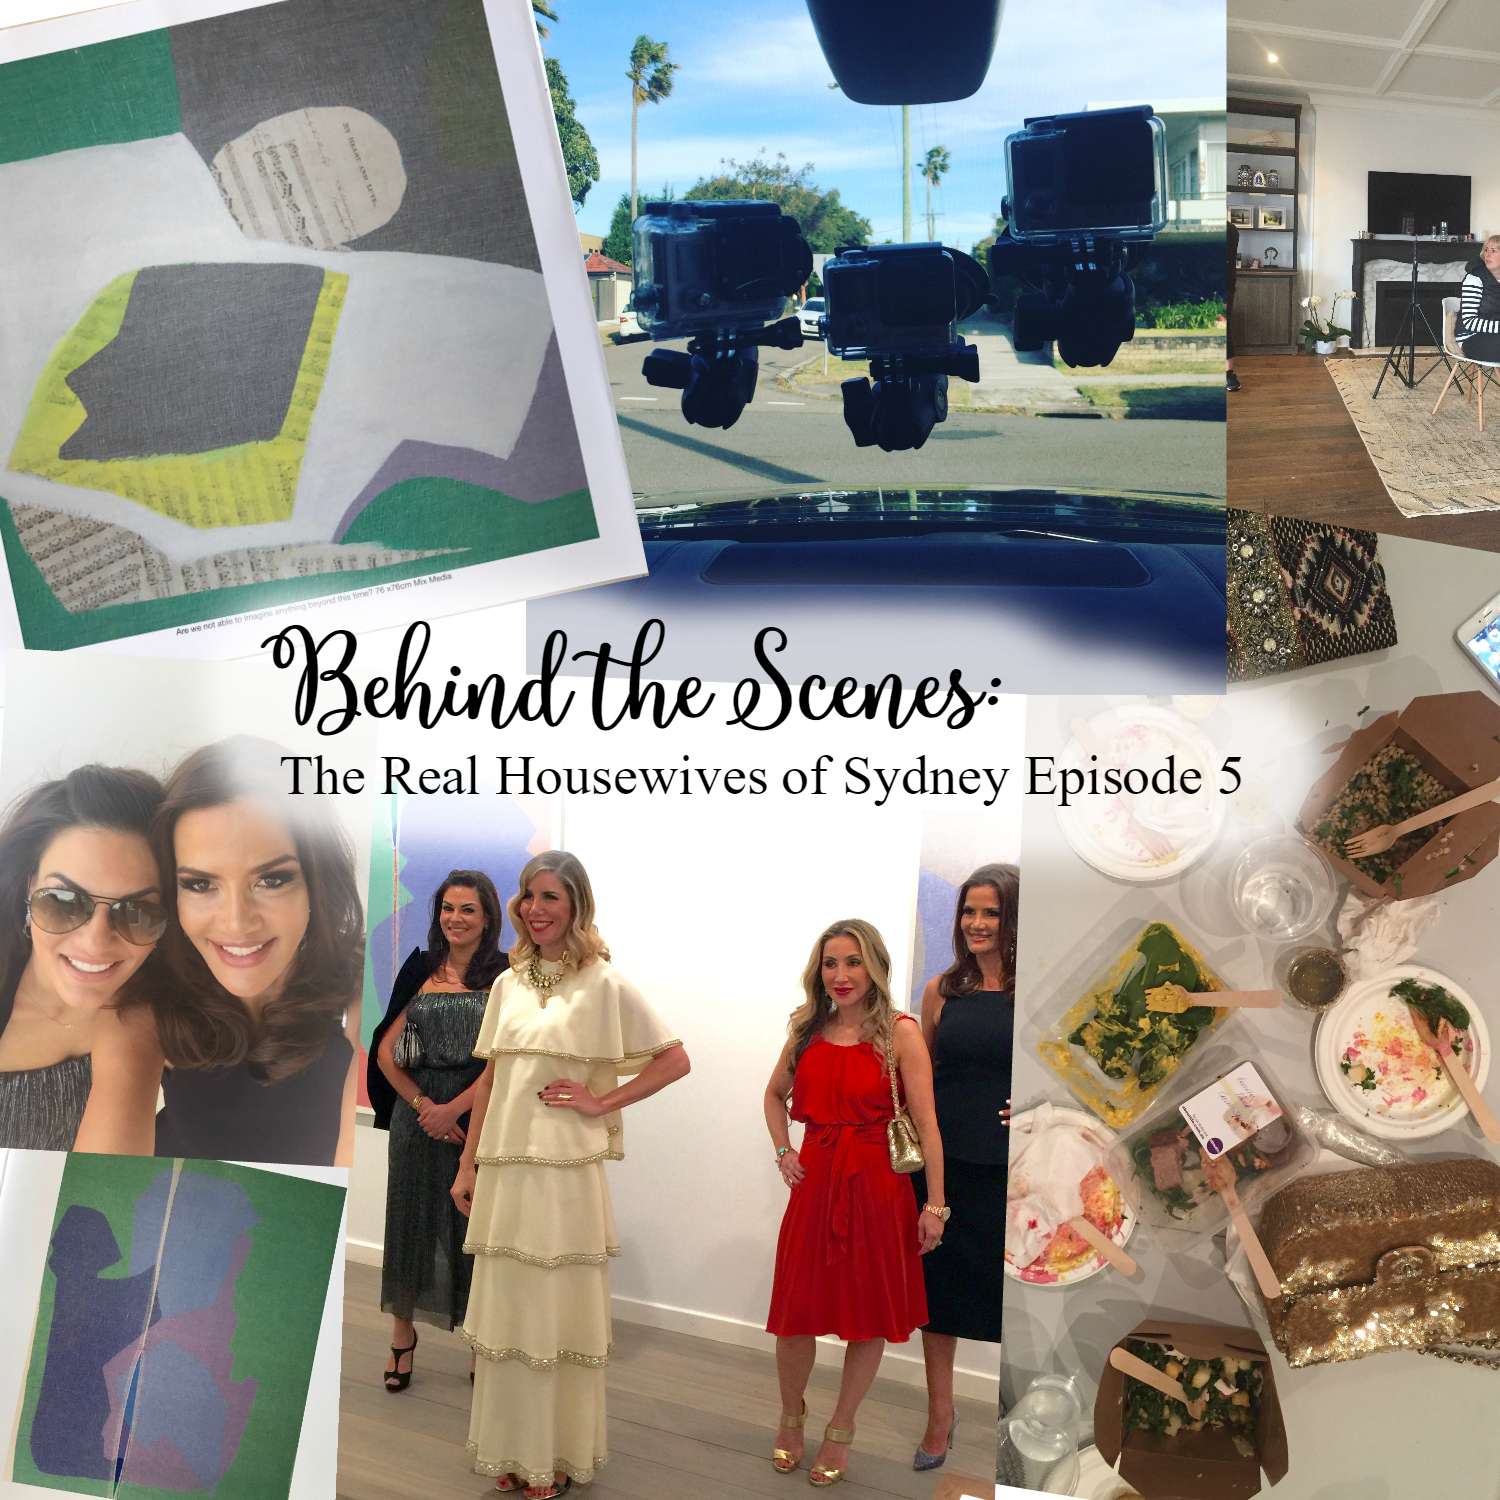 Behind the Scenes of The Real Housewives of Sydney Episode 5